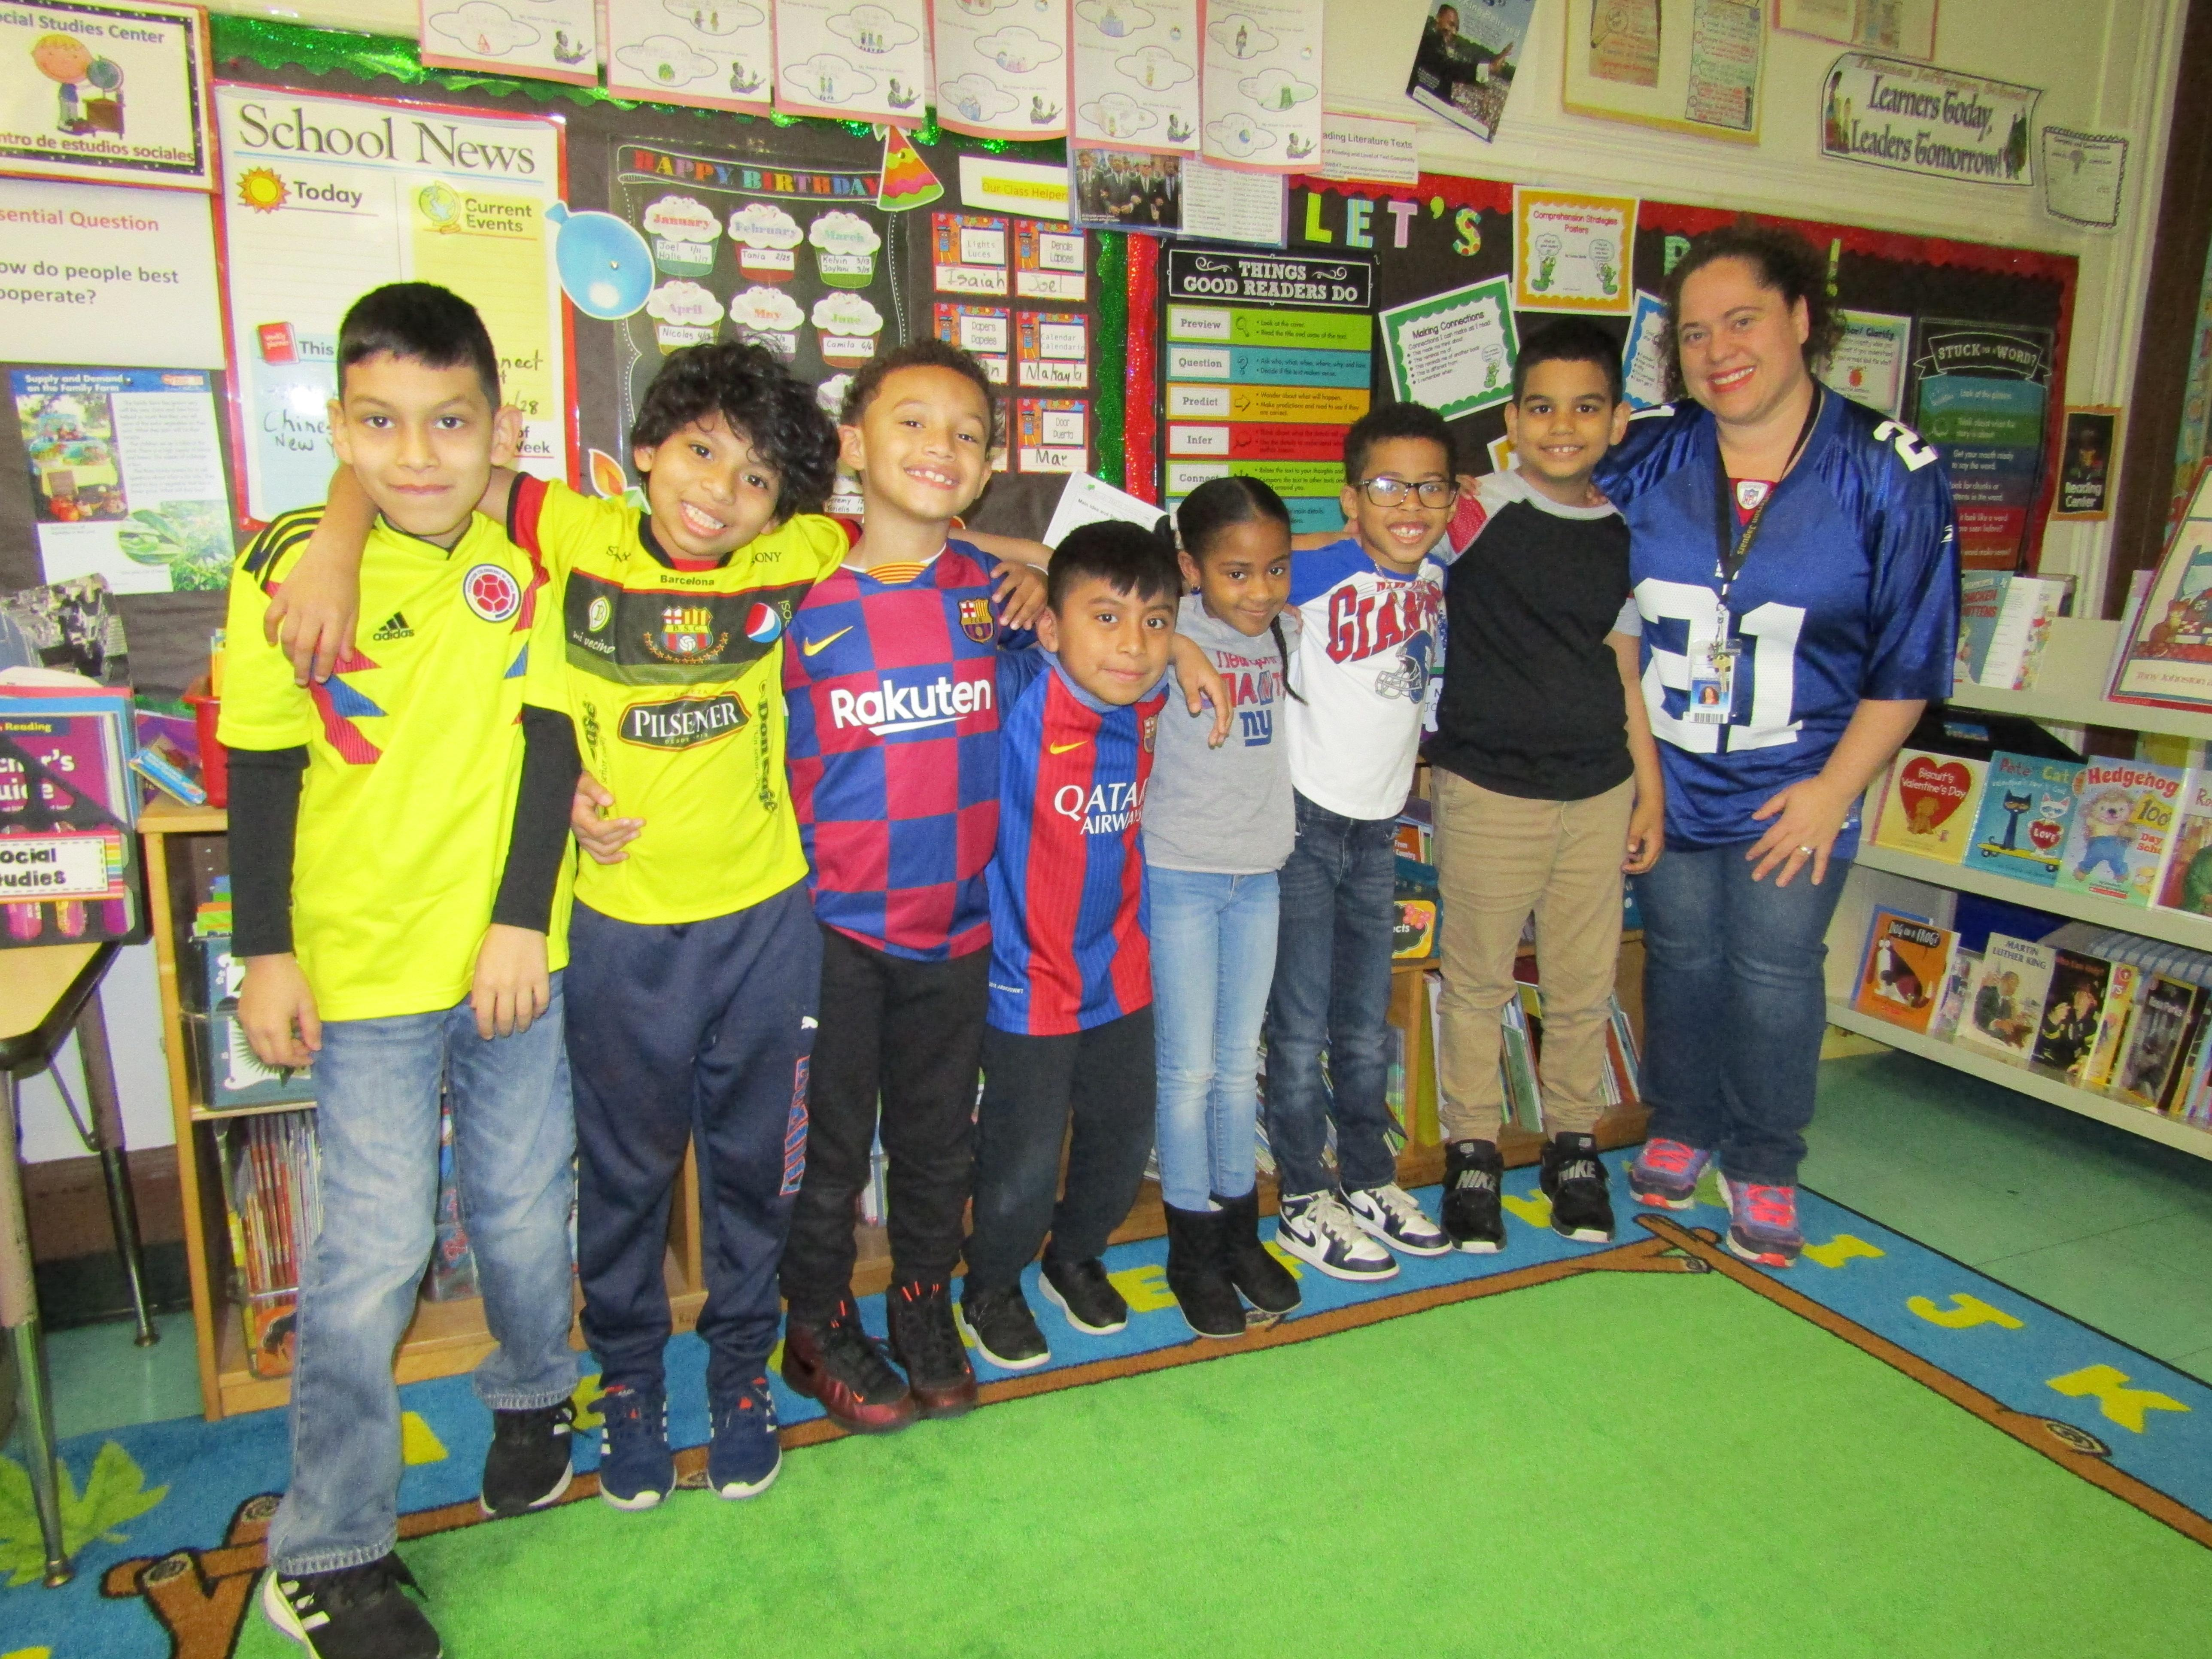 teacher with her students who are wearing sports jerseys